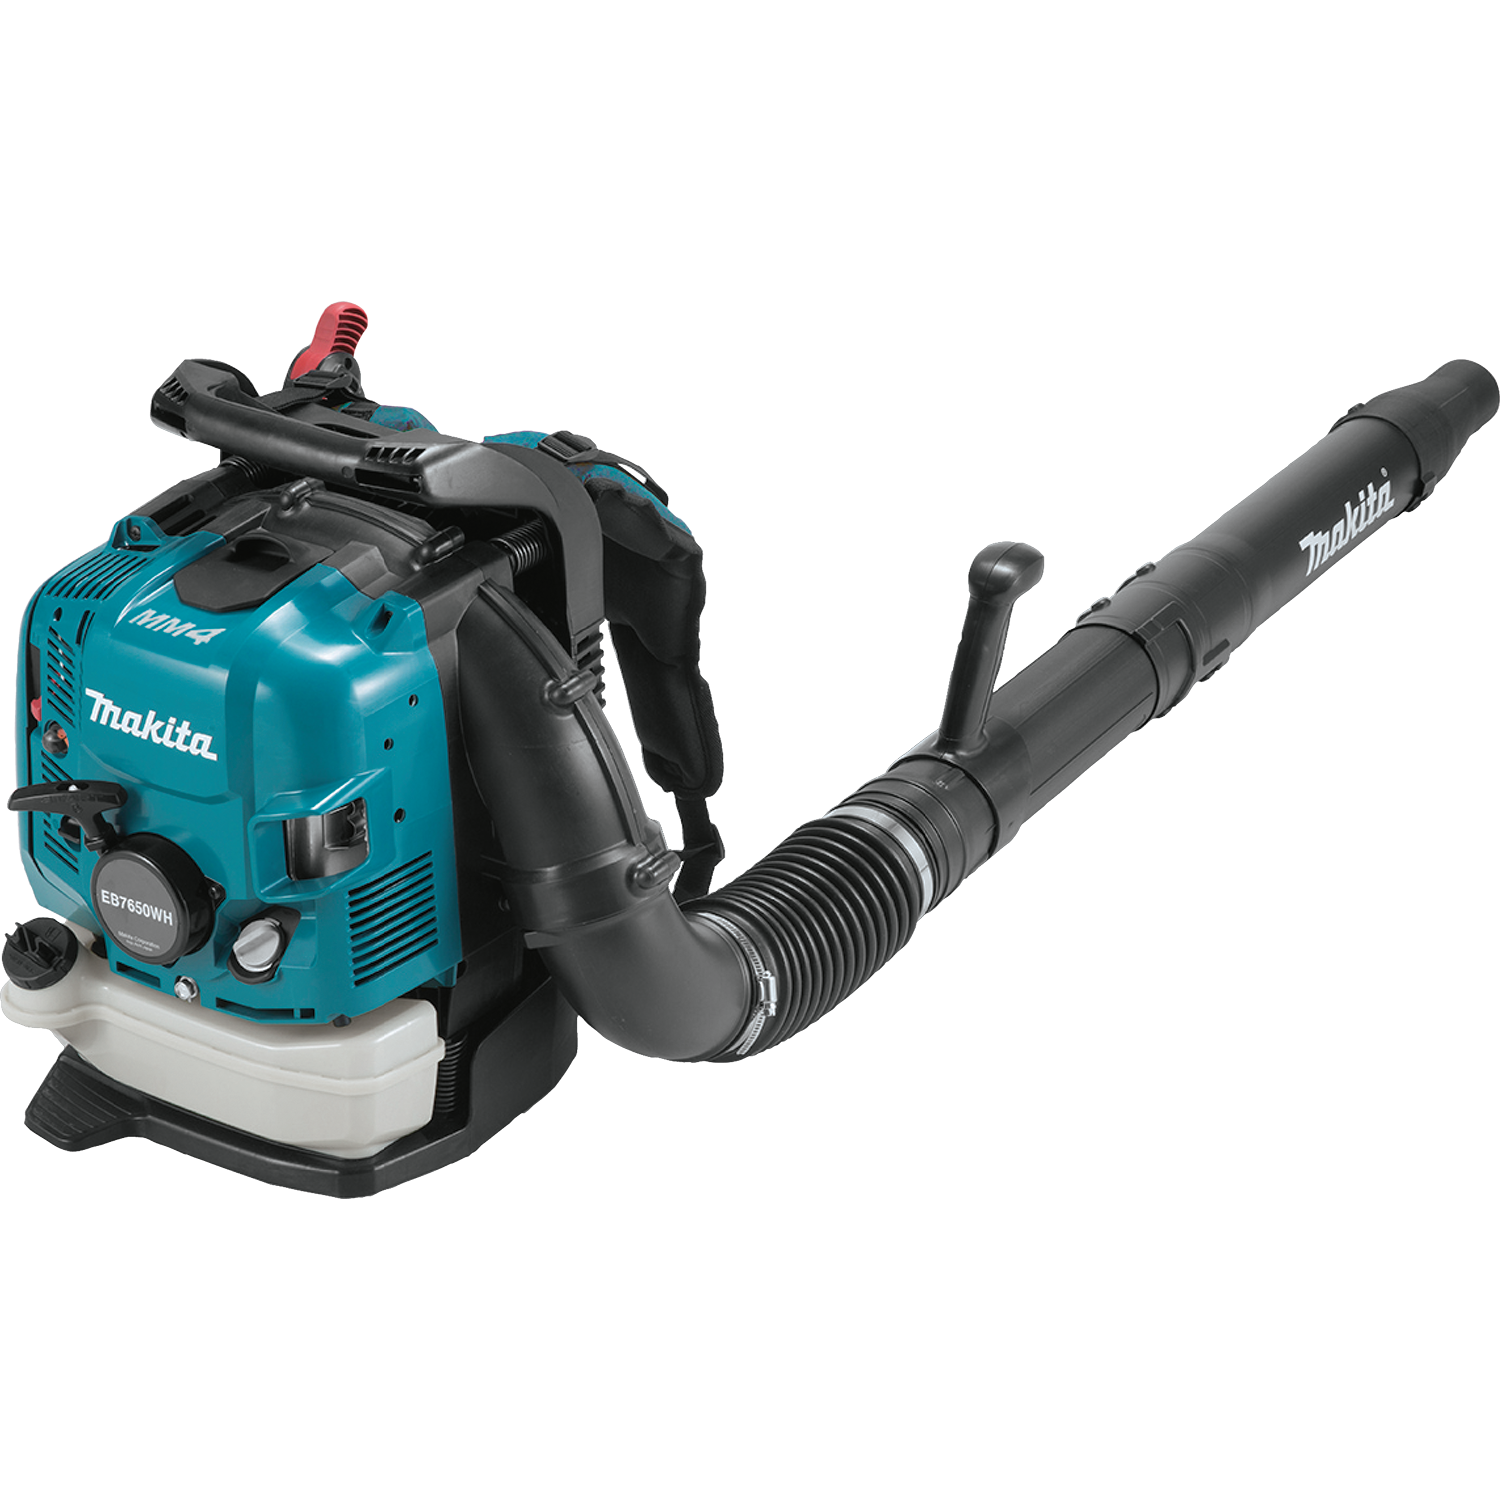 Makita usa product details eb7650wh eb7650wh publicscrutiny Images